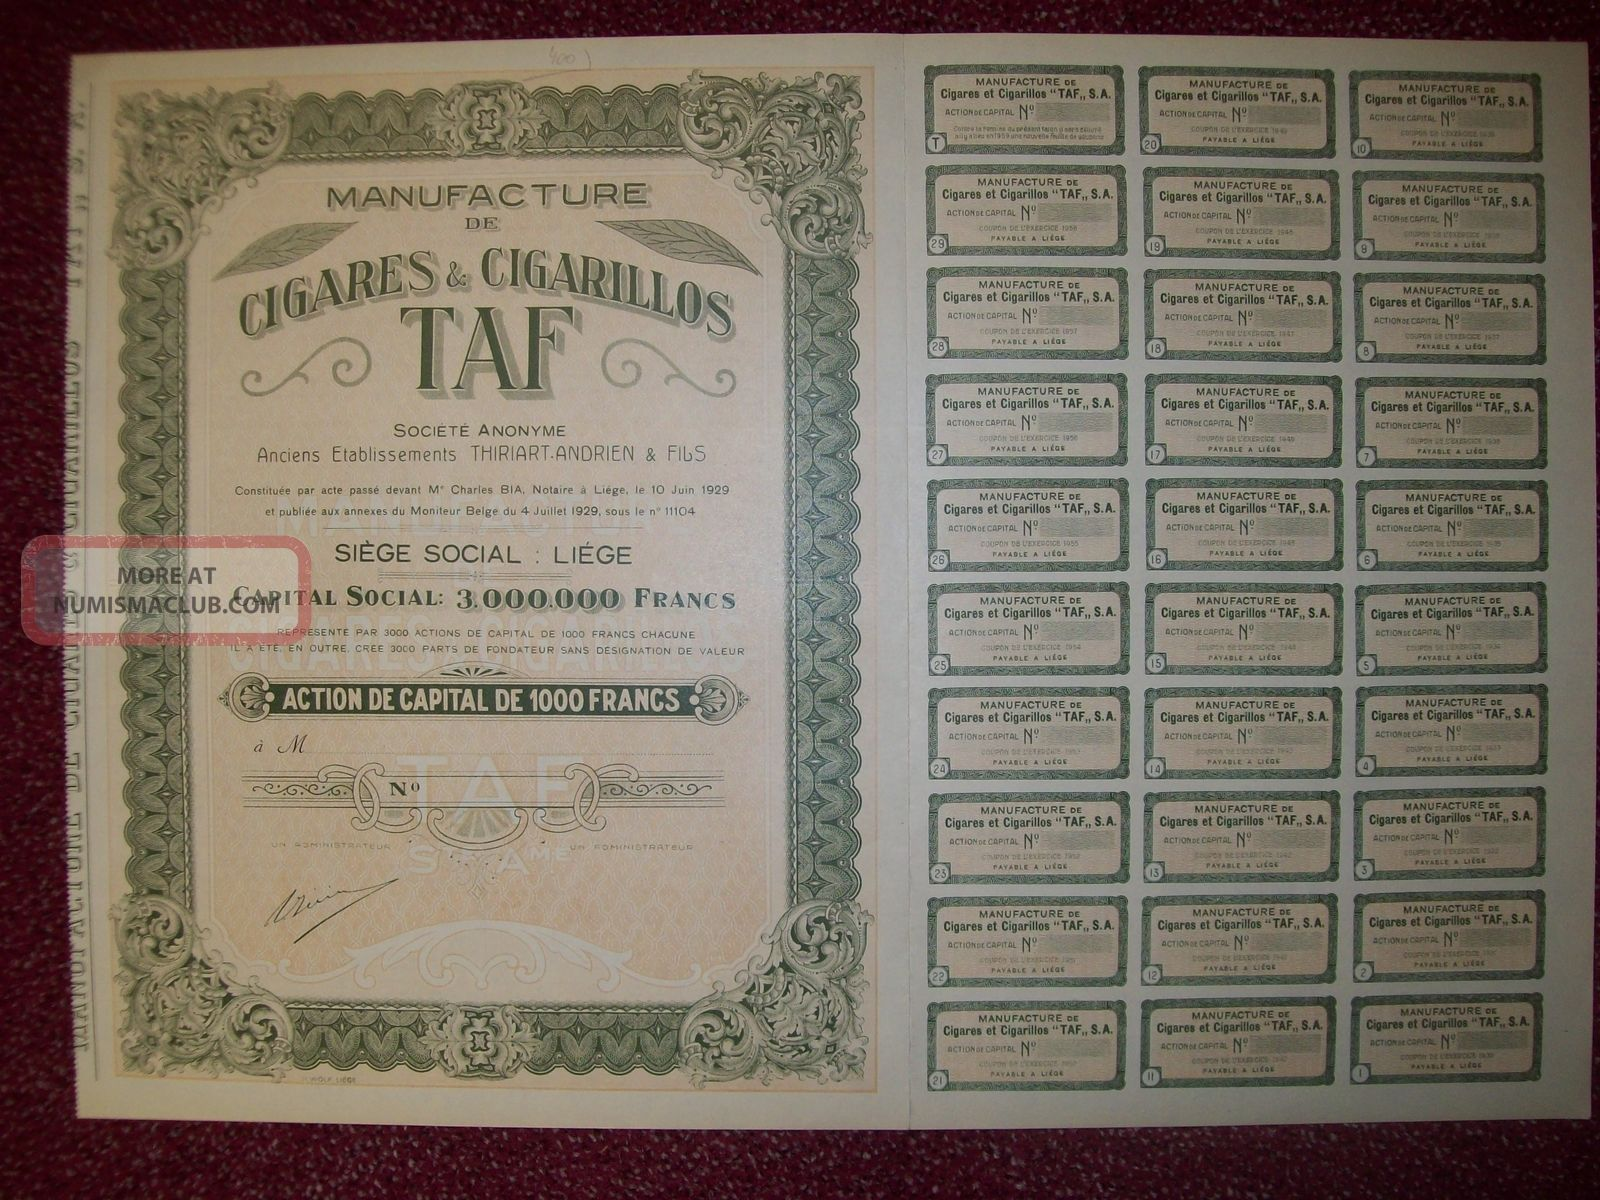 Belgium 1929 Bond - Cigares Cigarillos Taf Manufacture - Tabac Tobacco.  R3386 World photo